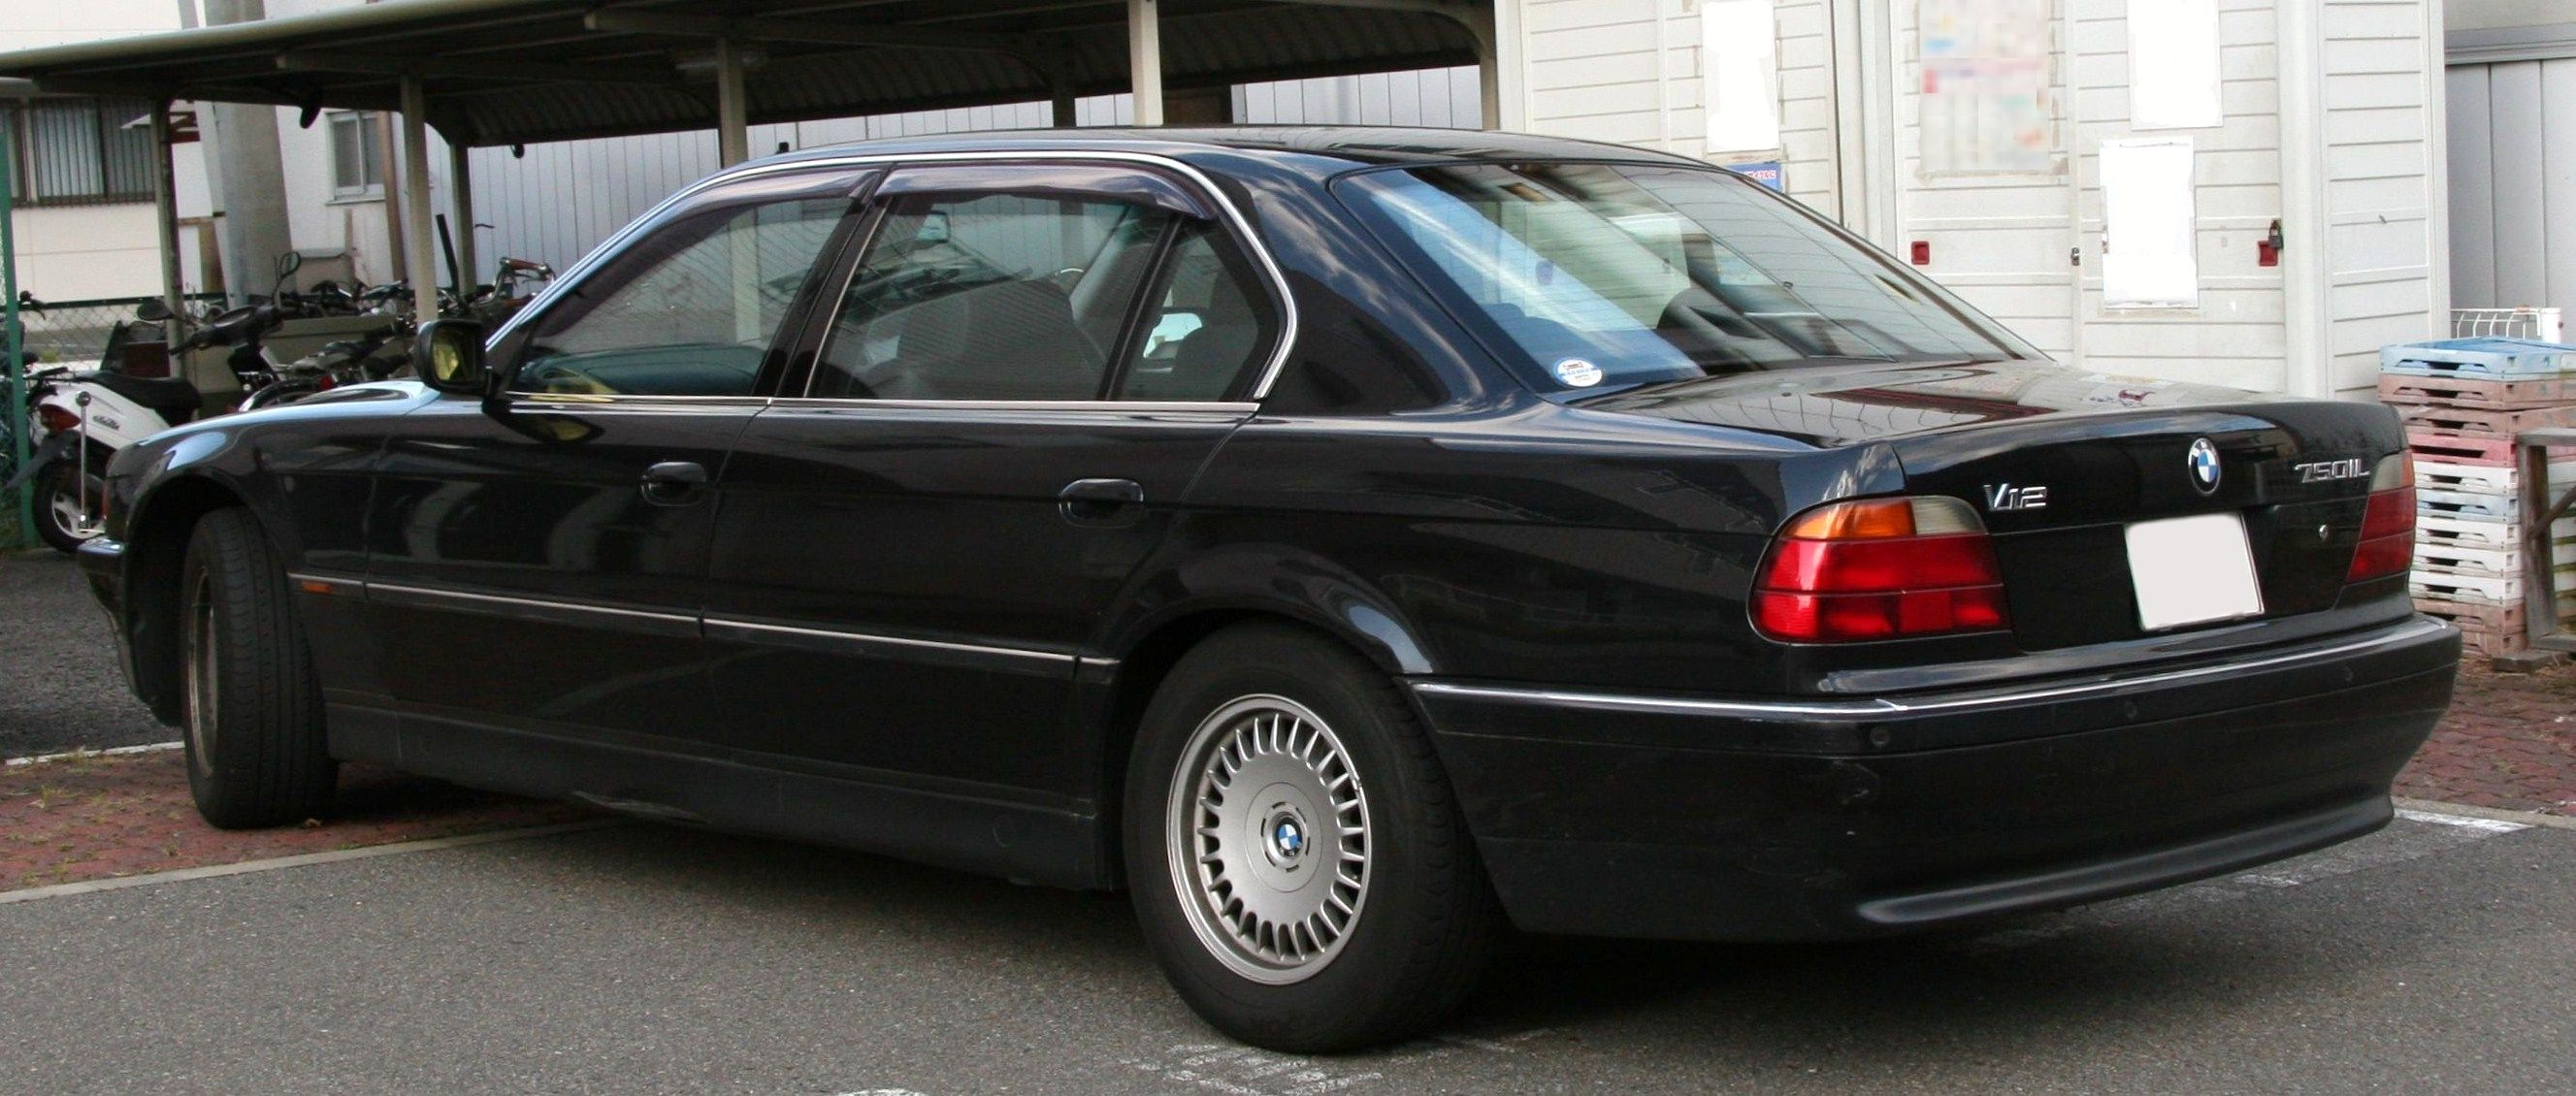 File:BMW 750iL rear.jpg